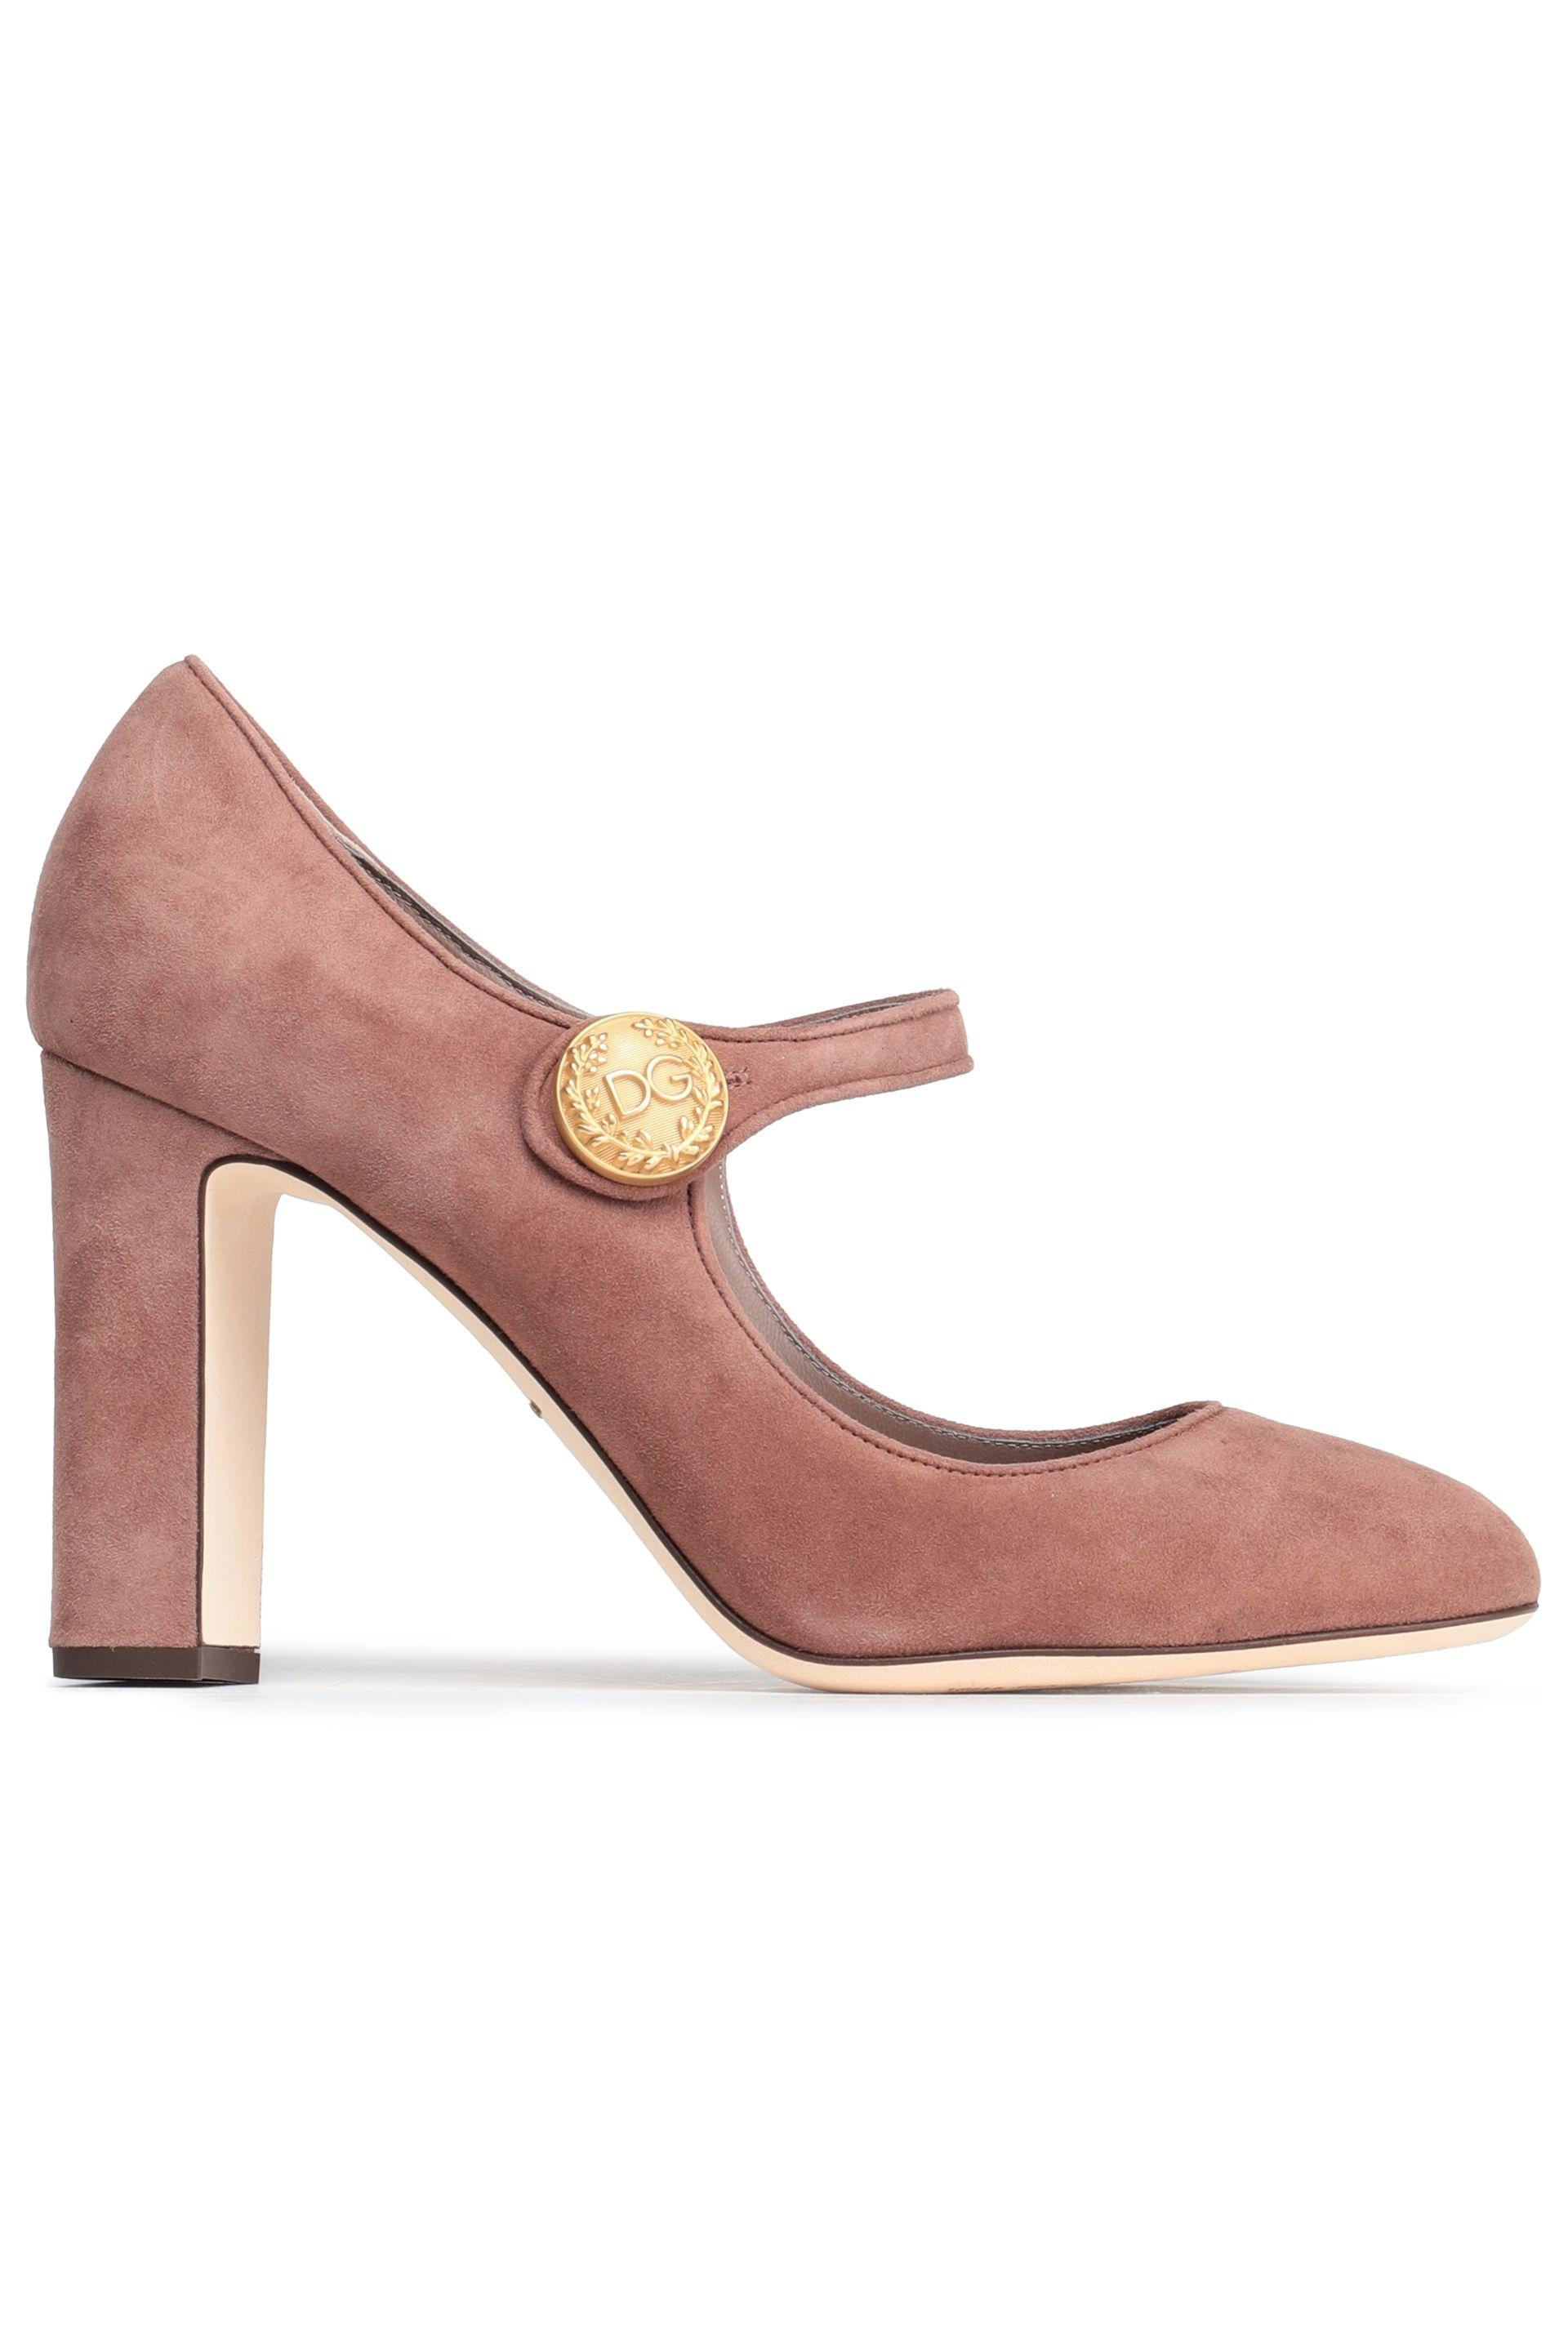 395eab27f0e9b Dolce & Gabbana Button-embellished Suede Mary Jane Pumps Antique ...